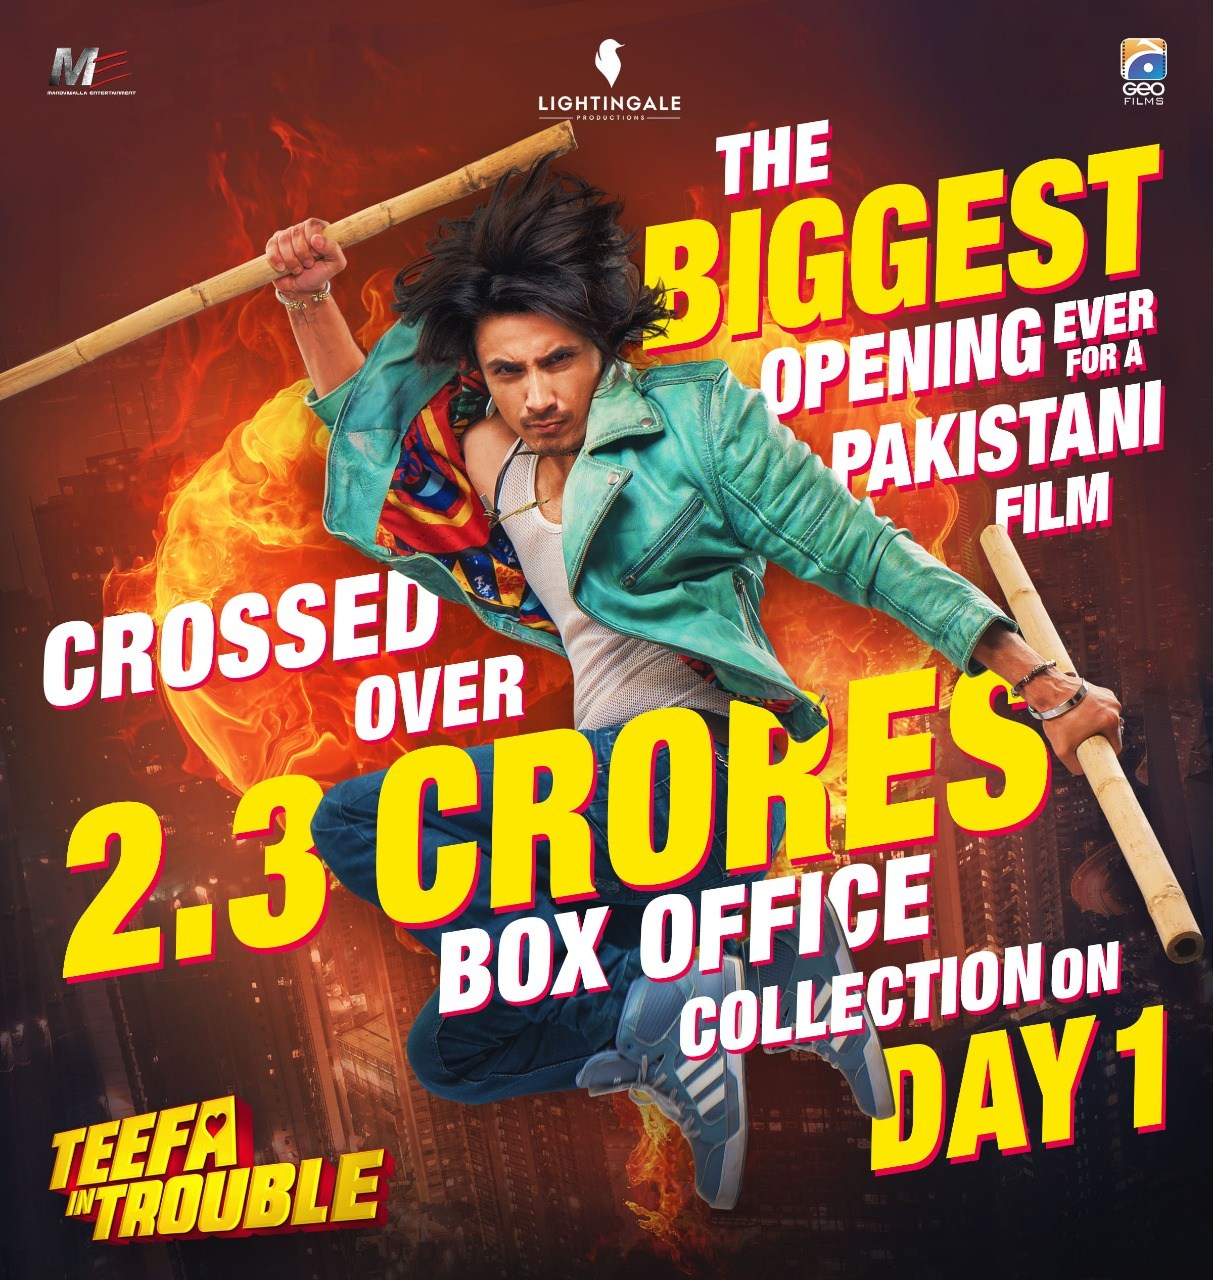 Teefa-in-Trouble-officially-Breaks-Box-Office-Record.jpg